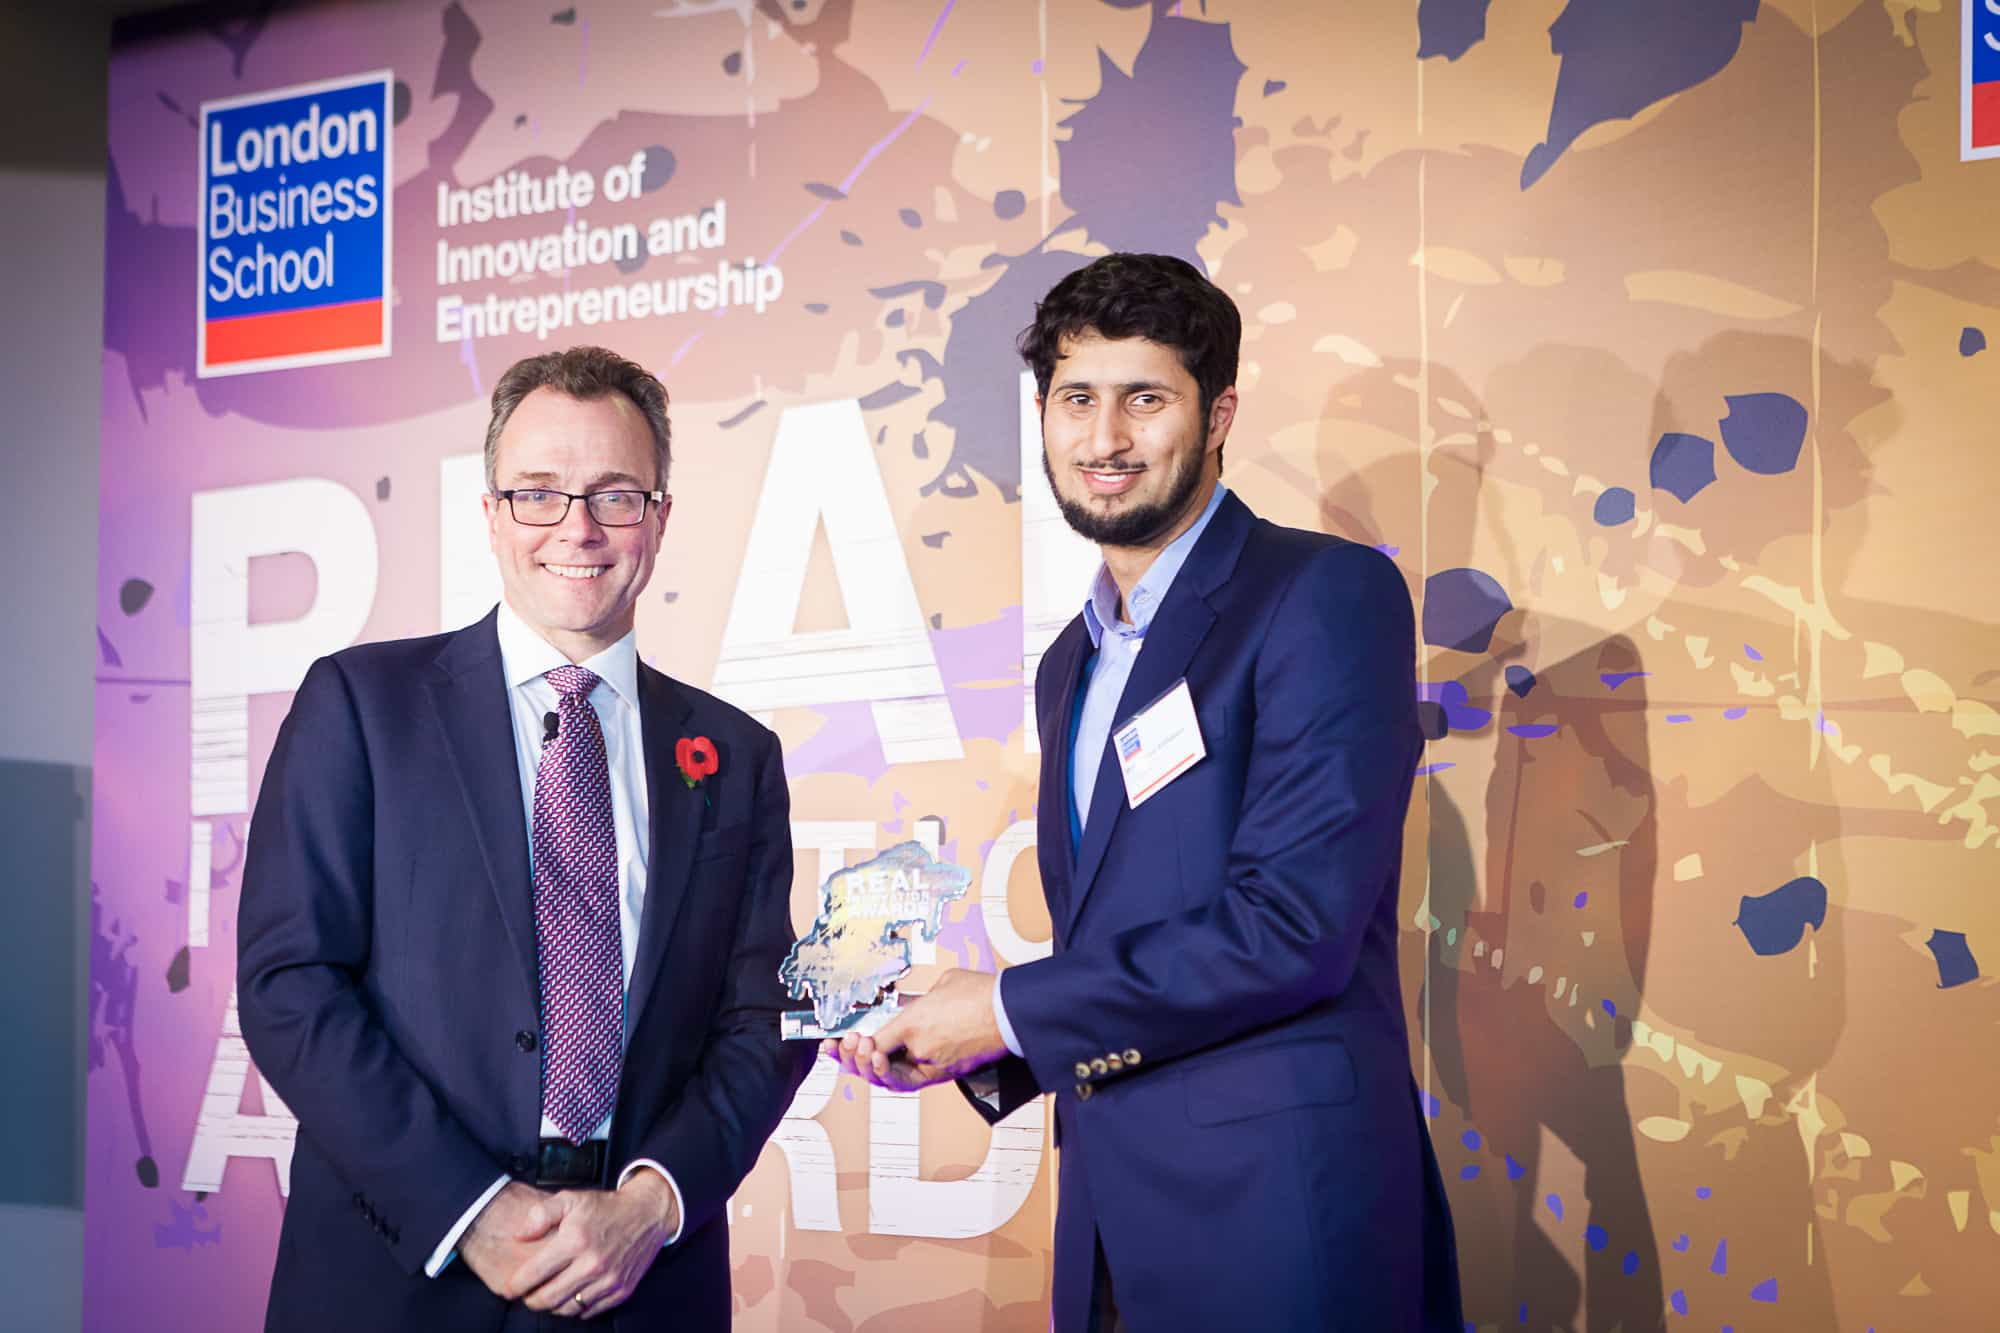 Noon Academy wins prestigious London Business School award; aims for 50 million students by 2023